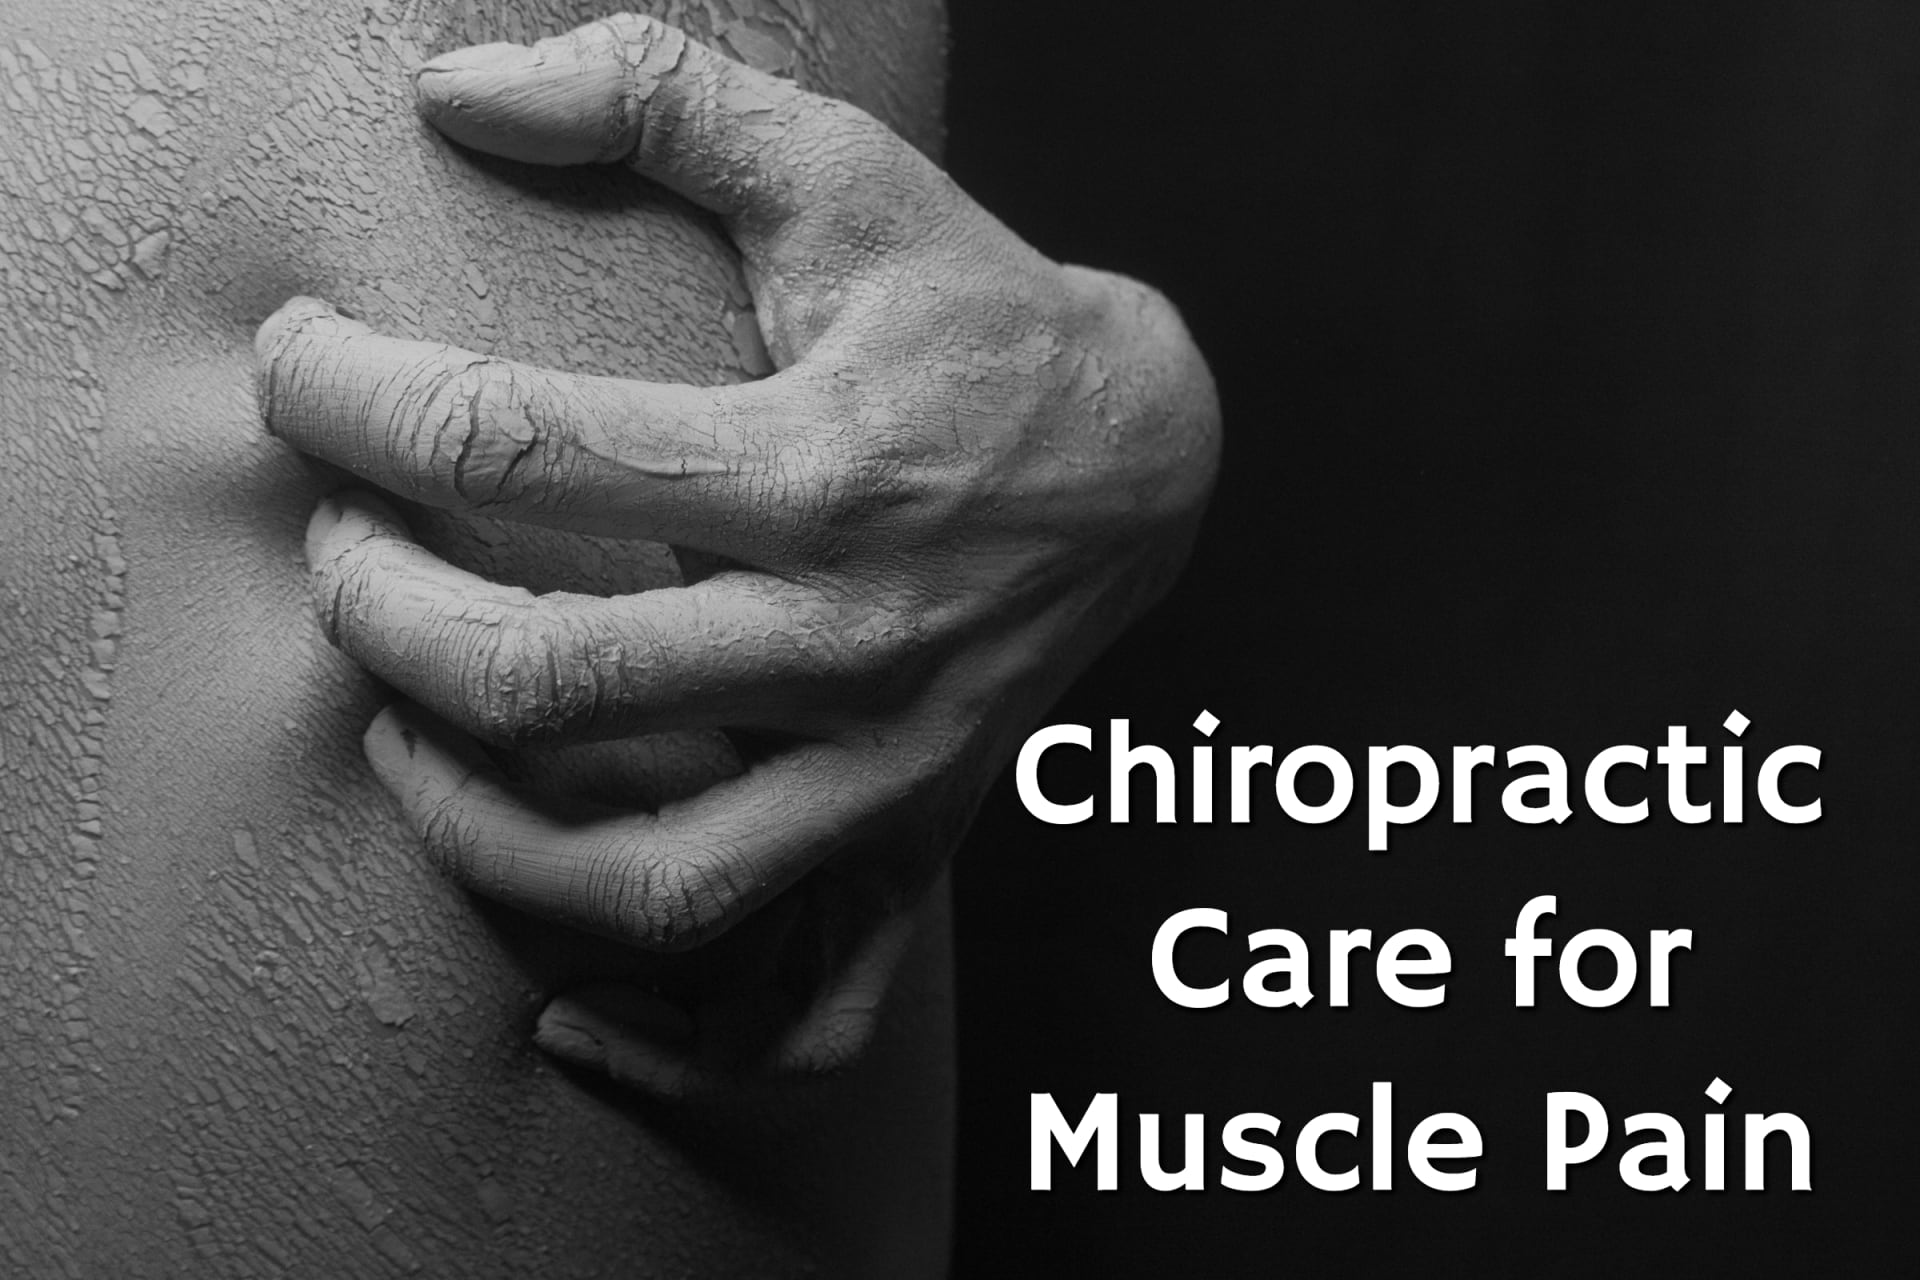 Can a Chiropractor Help Muscle Pain?